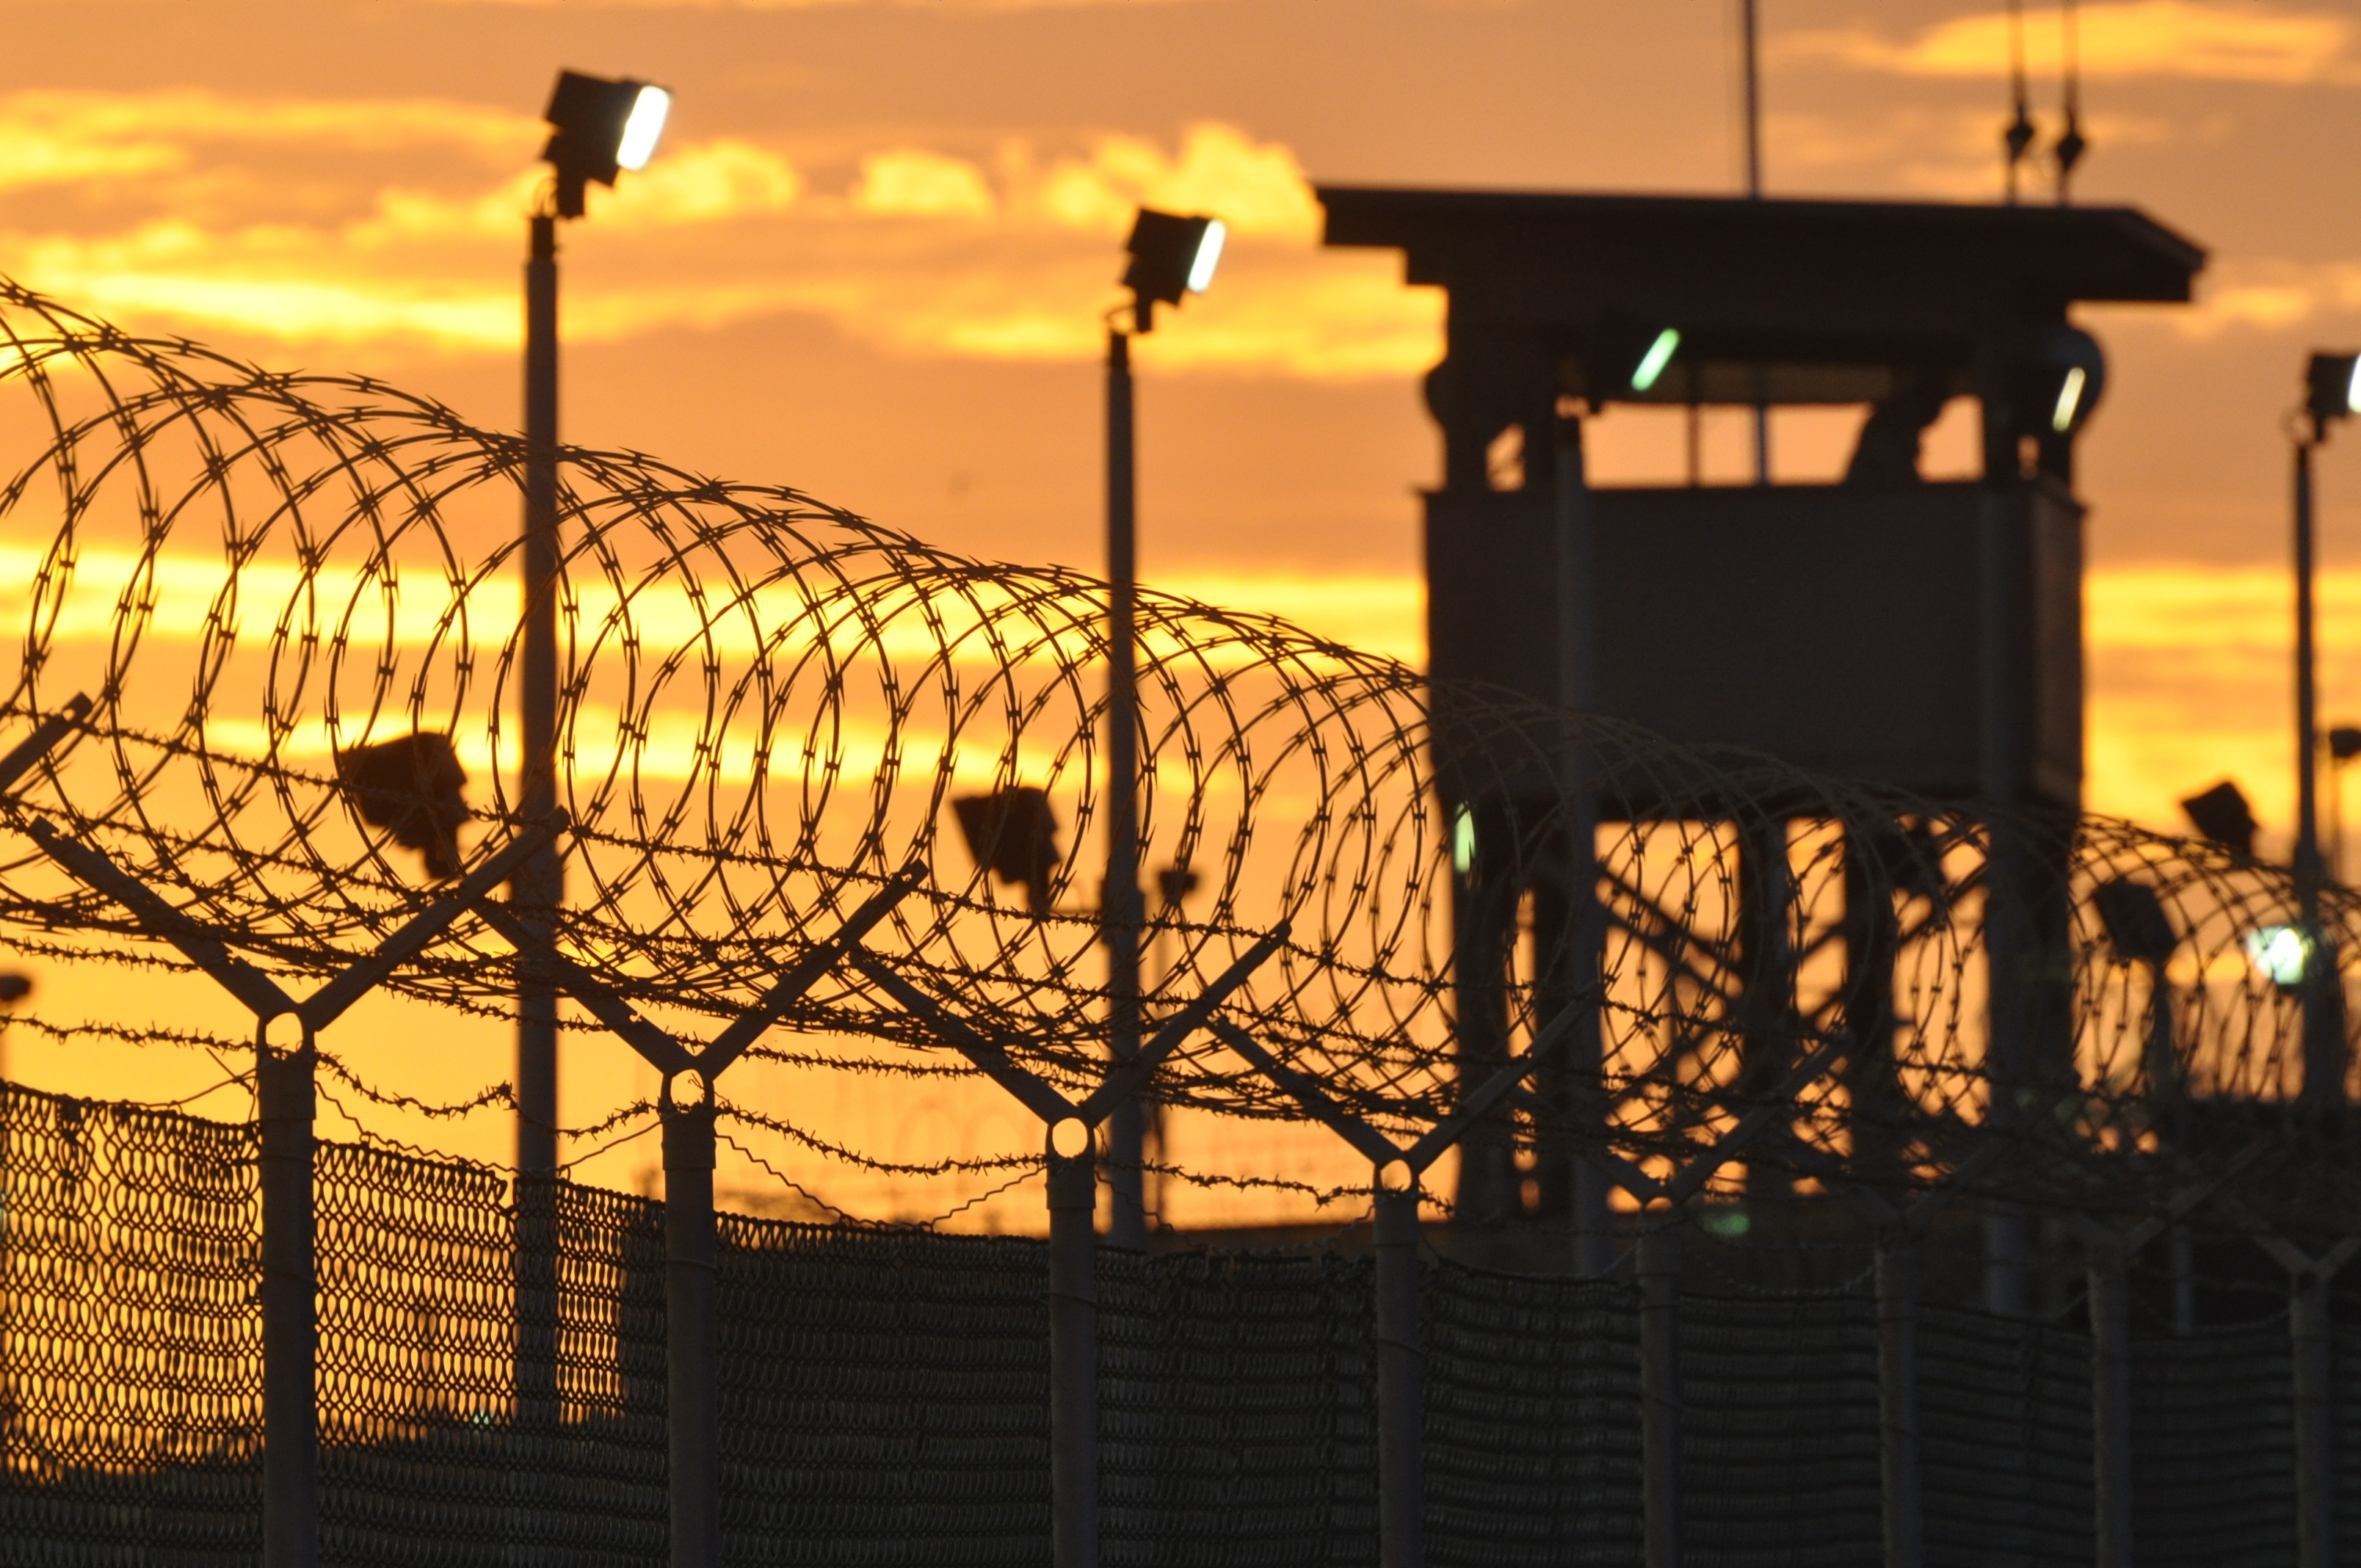 After the attacks of Sept. 11, 2001, hundreds of captives were held at the U.S. naval base in Guantanamo Bay, Cuba. (Michelle Shephard)